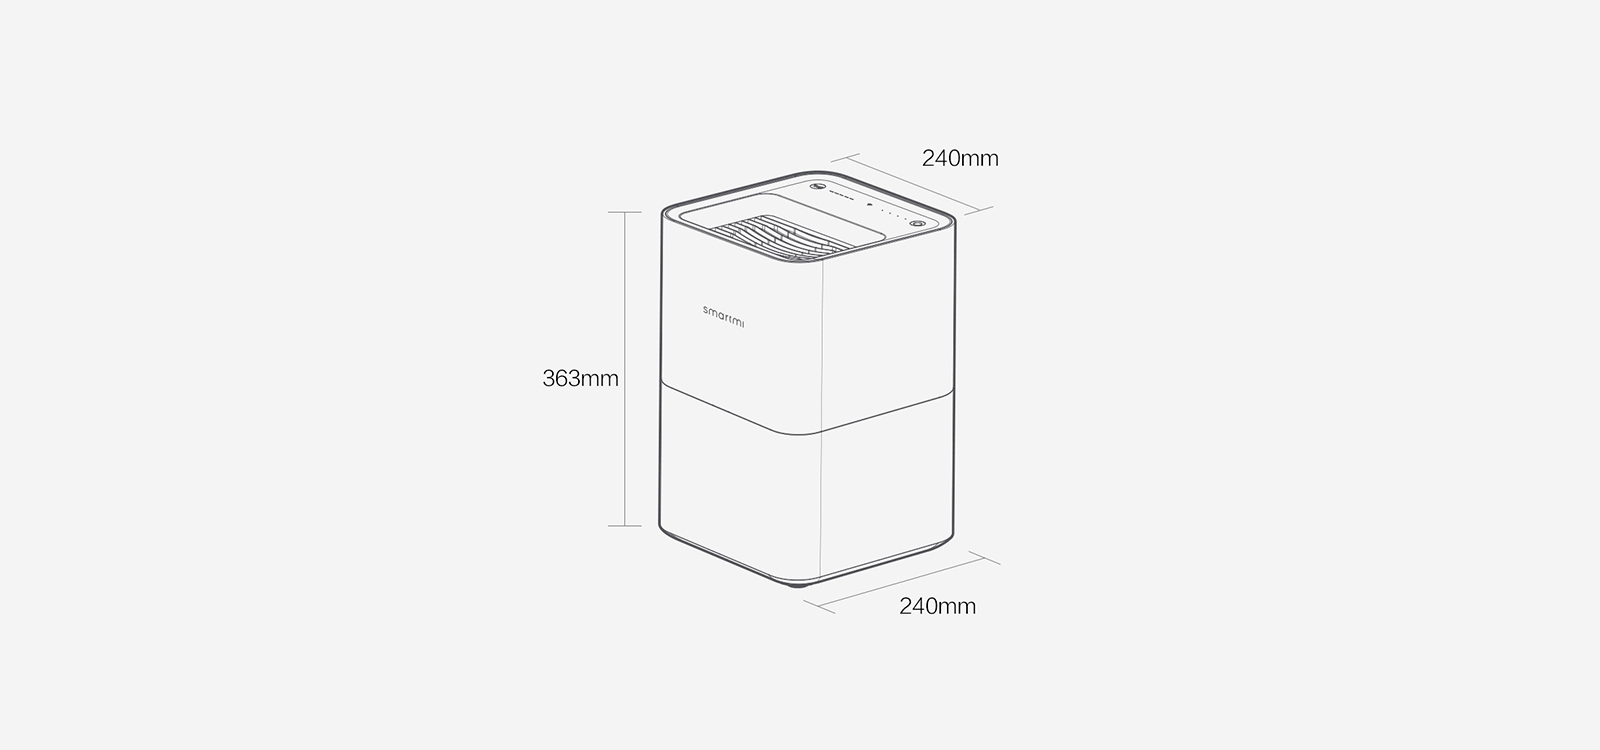 Xiaomi_Smartmi_Air_Humidifier_2_3.jpg